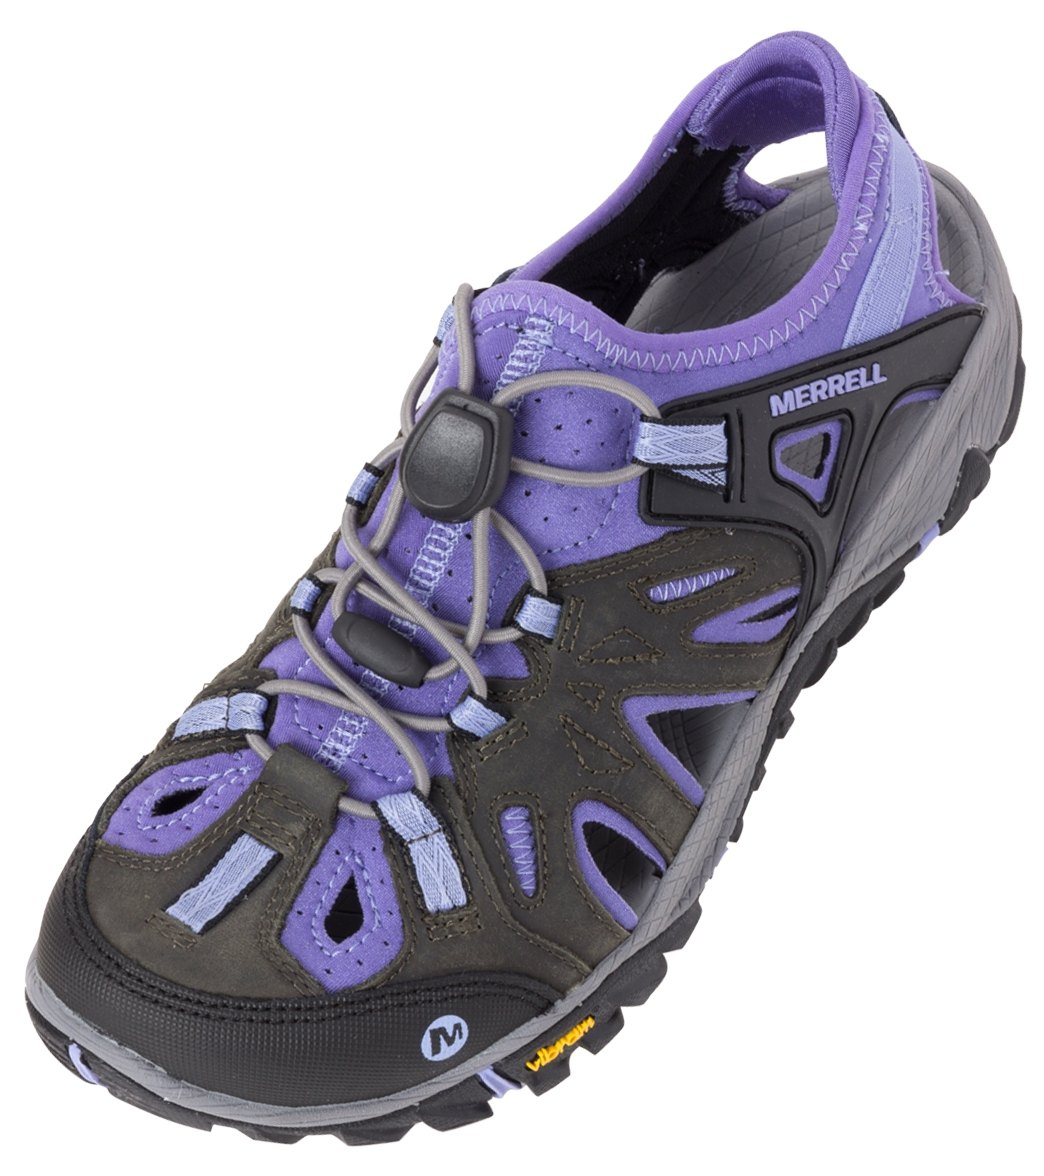 13568a7bc6f Merrell Women s All Out Blaze Sieve Water Shoes at SwimOutlet.com - Free  Shipping